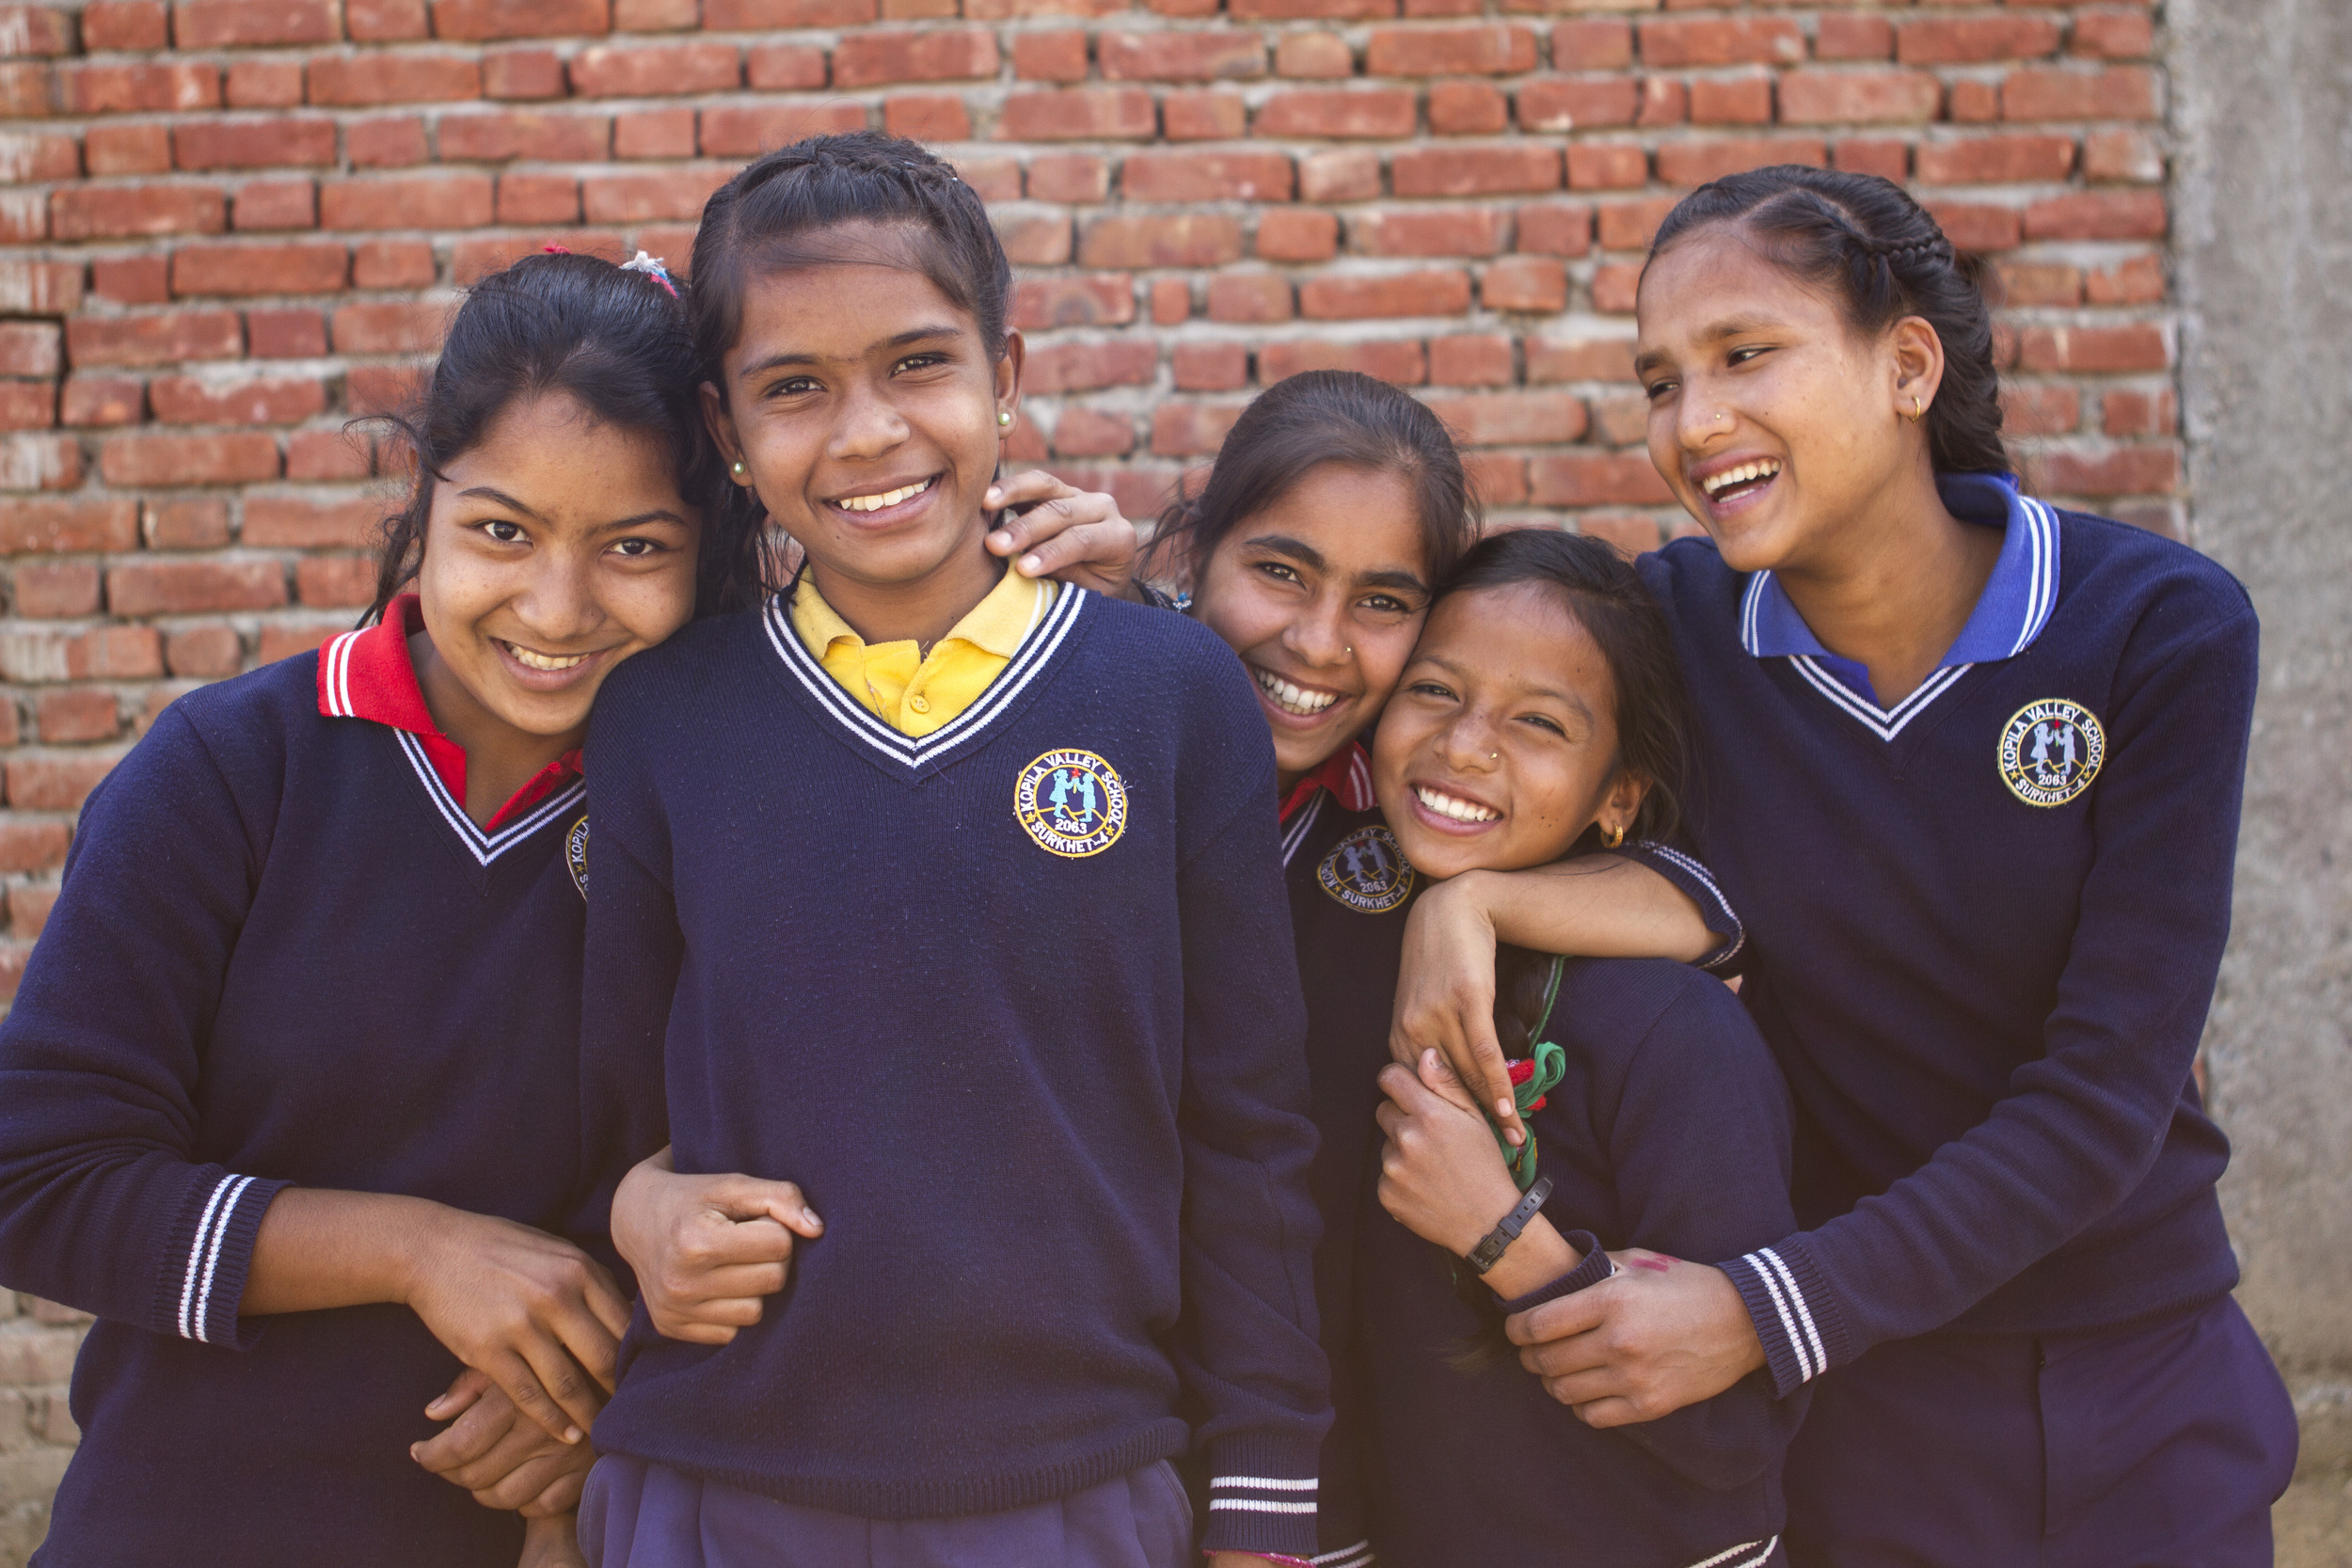 She's the First Scholars Deepa B., Durga S., Sarita A., Jharana B., and Sunita S. pose for the camera in Nepal, March 2015. (photo by Kate Lord)